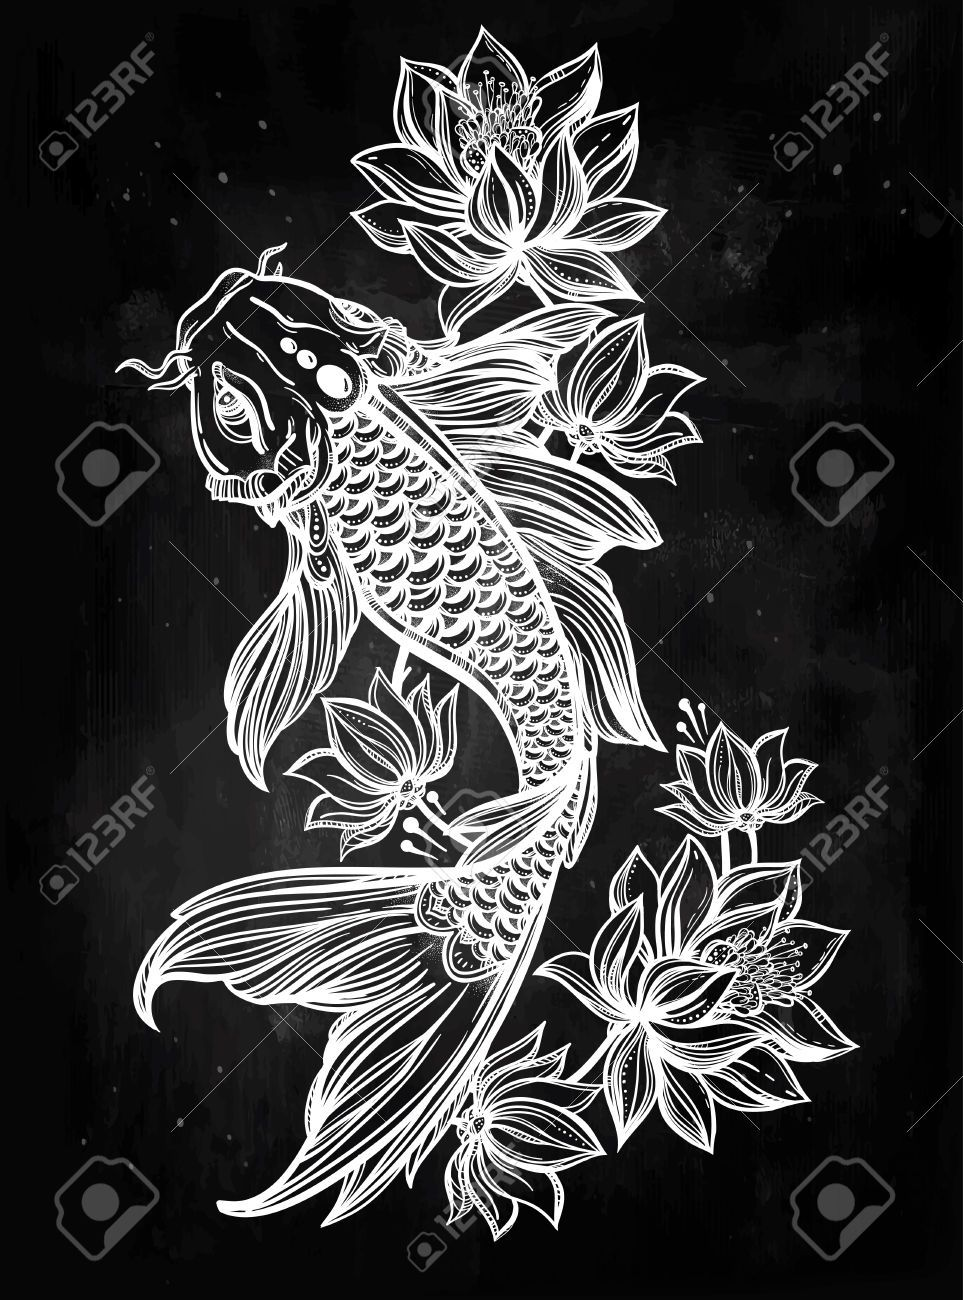 cf94d003f05bb koi fish with lotus flower drawing - Google Search | tattoos | Koi ...